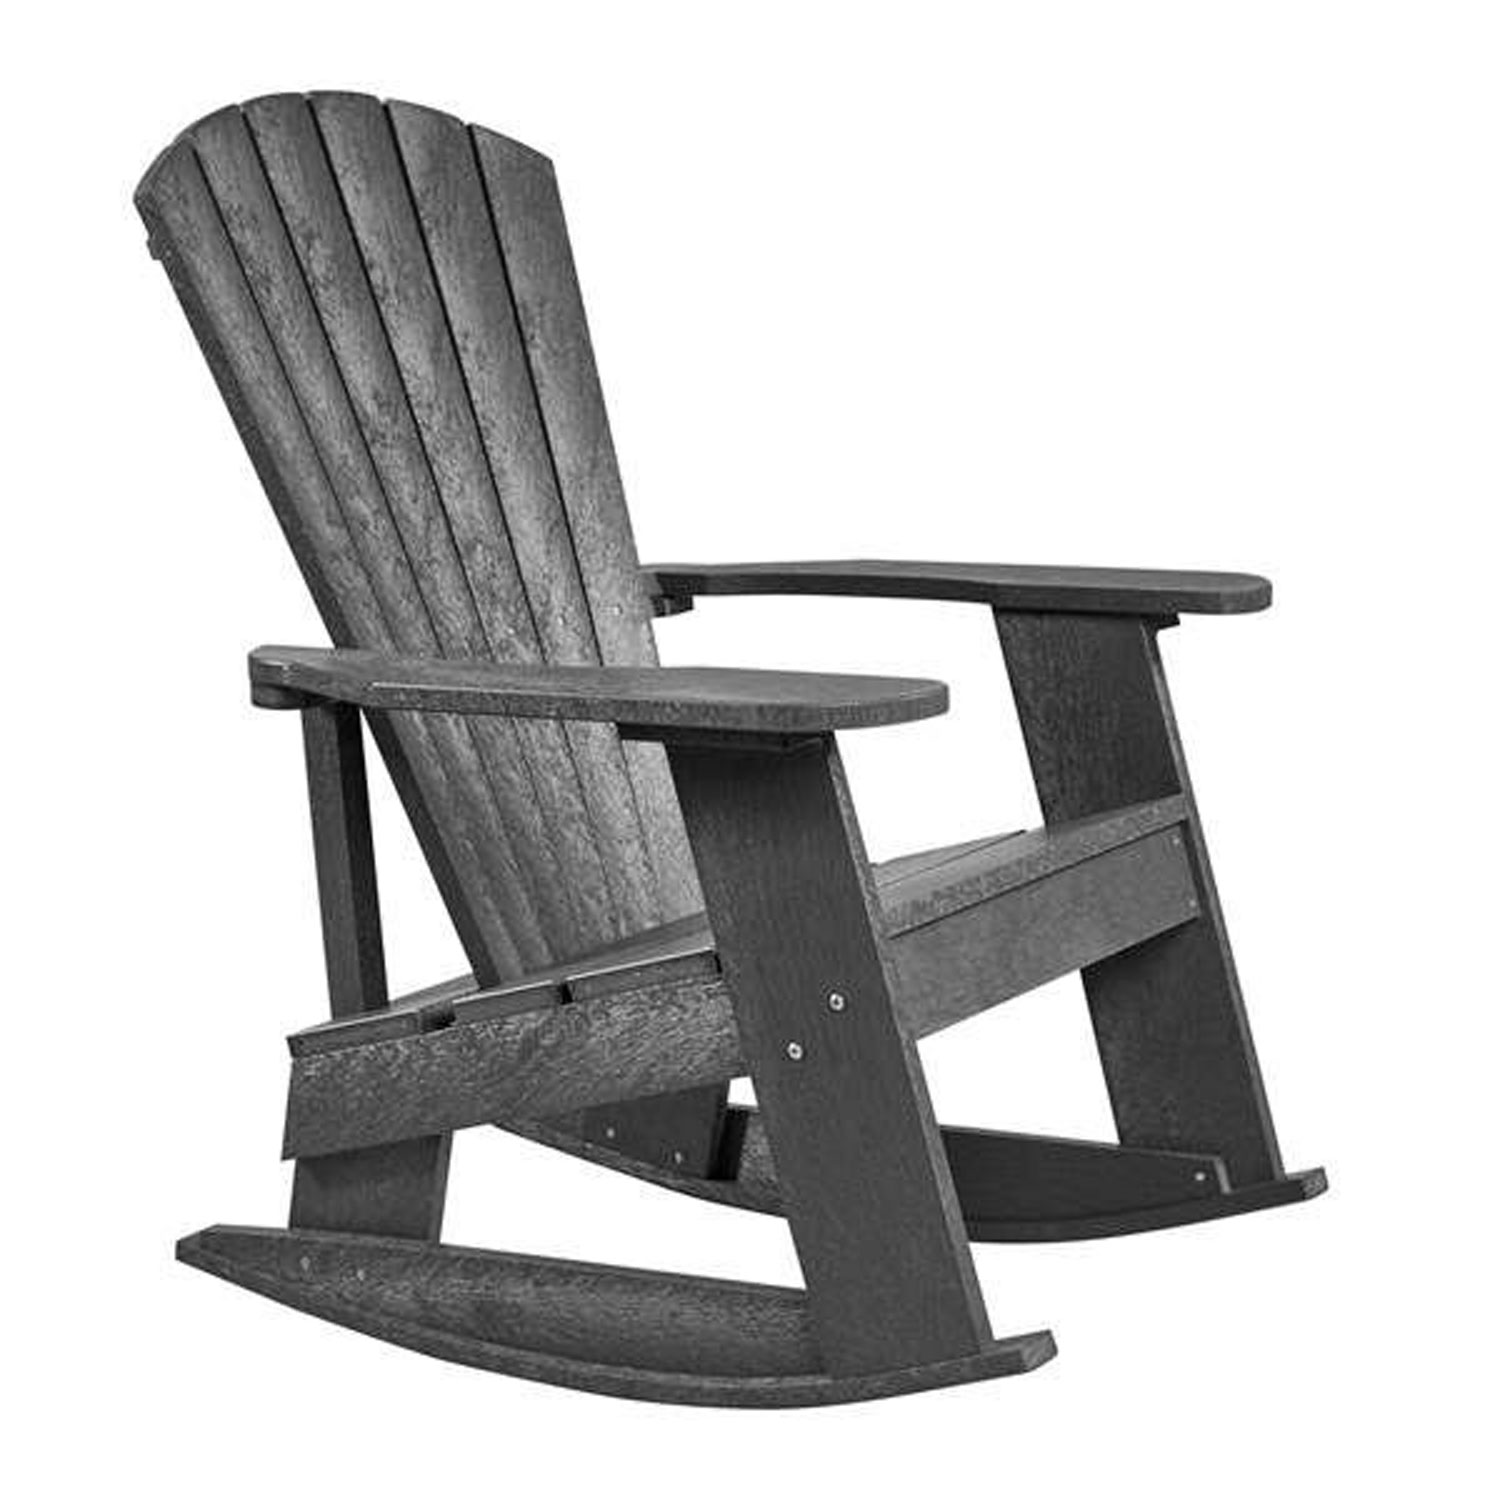 Patio Chairs Category